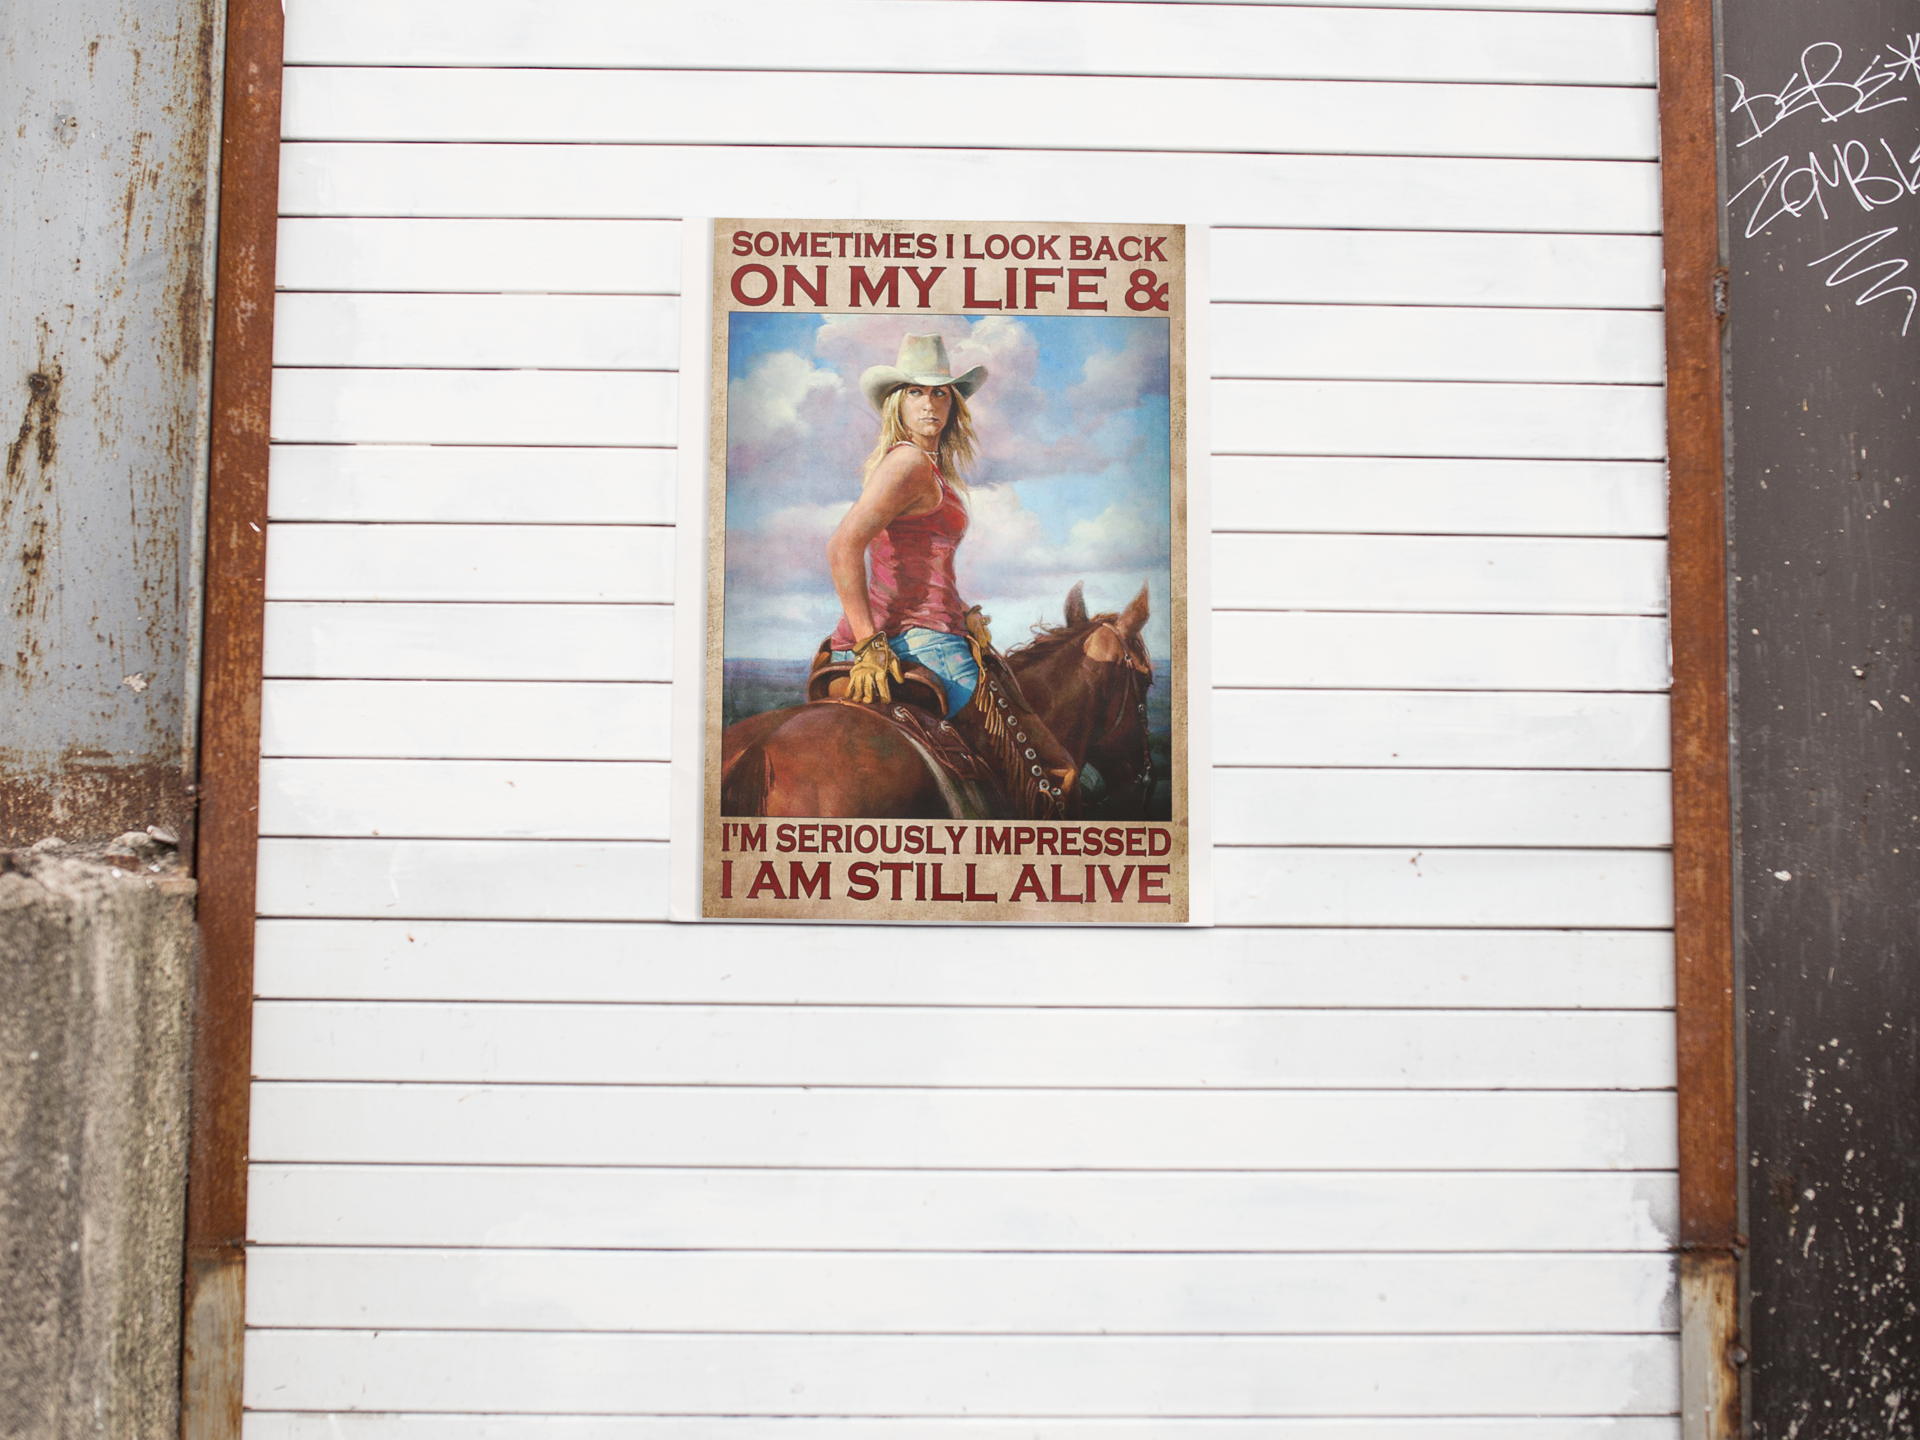 Sometimes I look back on my life and I'm seriously impressed I am still alive poster 19